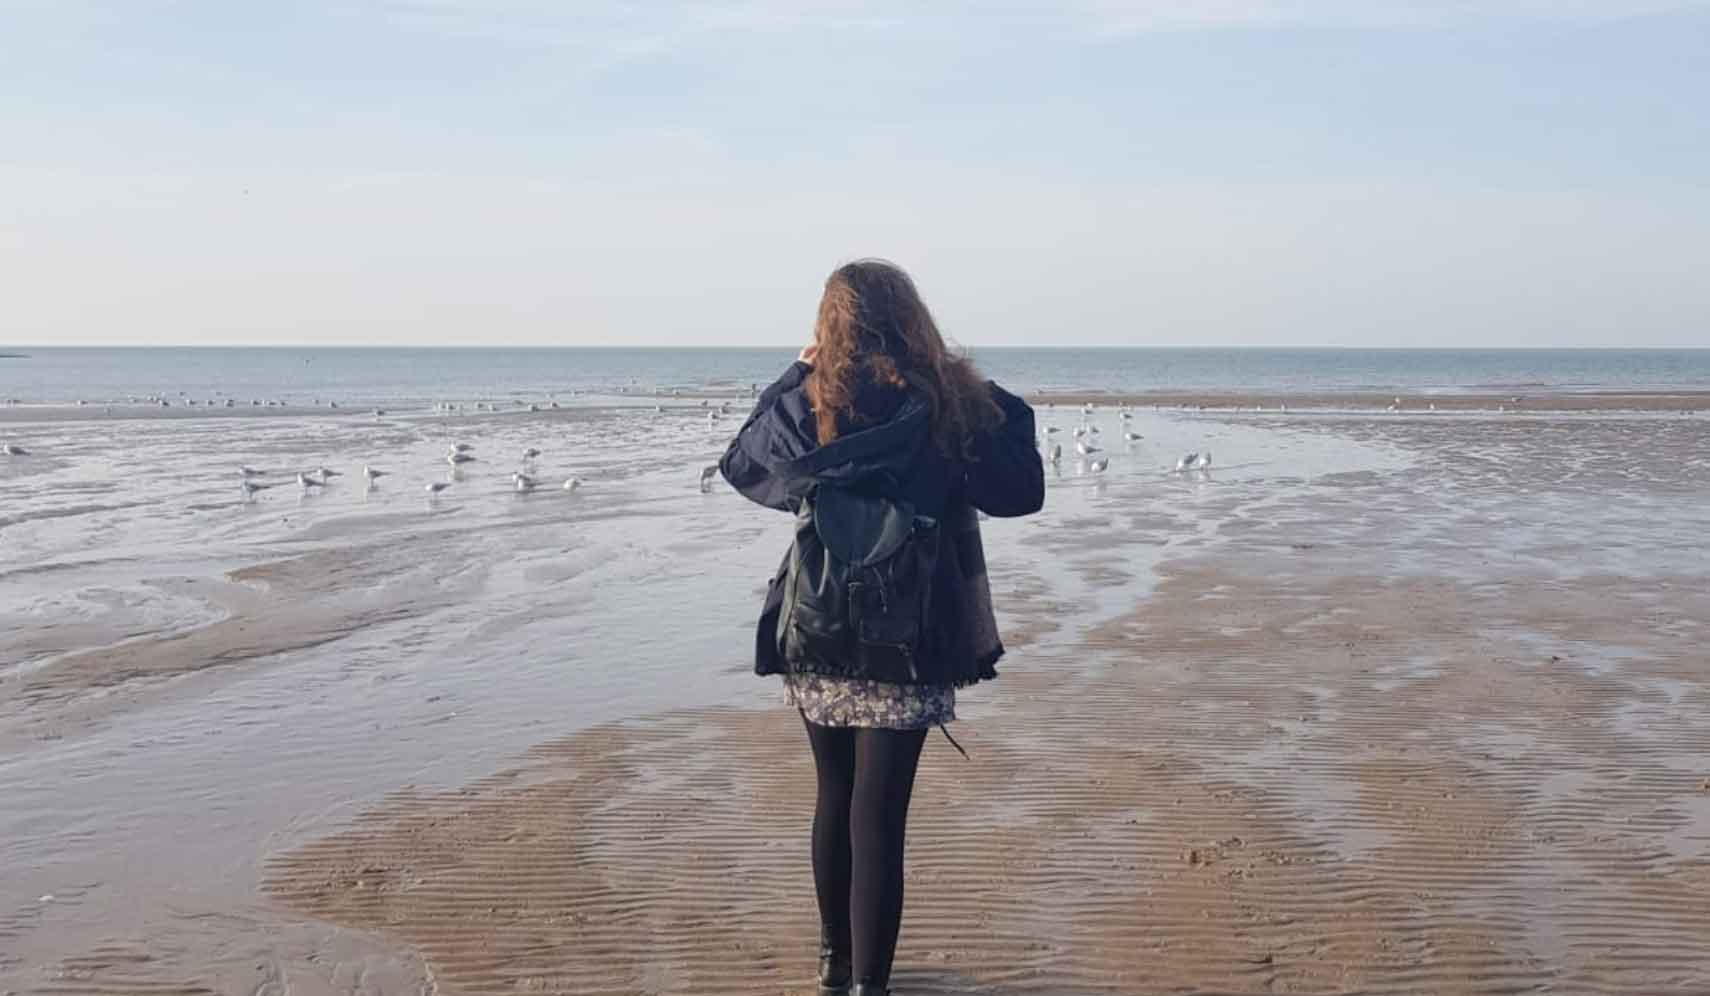 Student walking on a beach